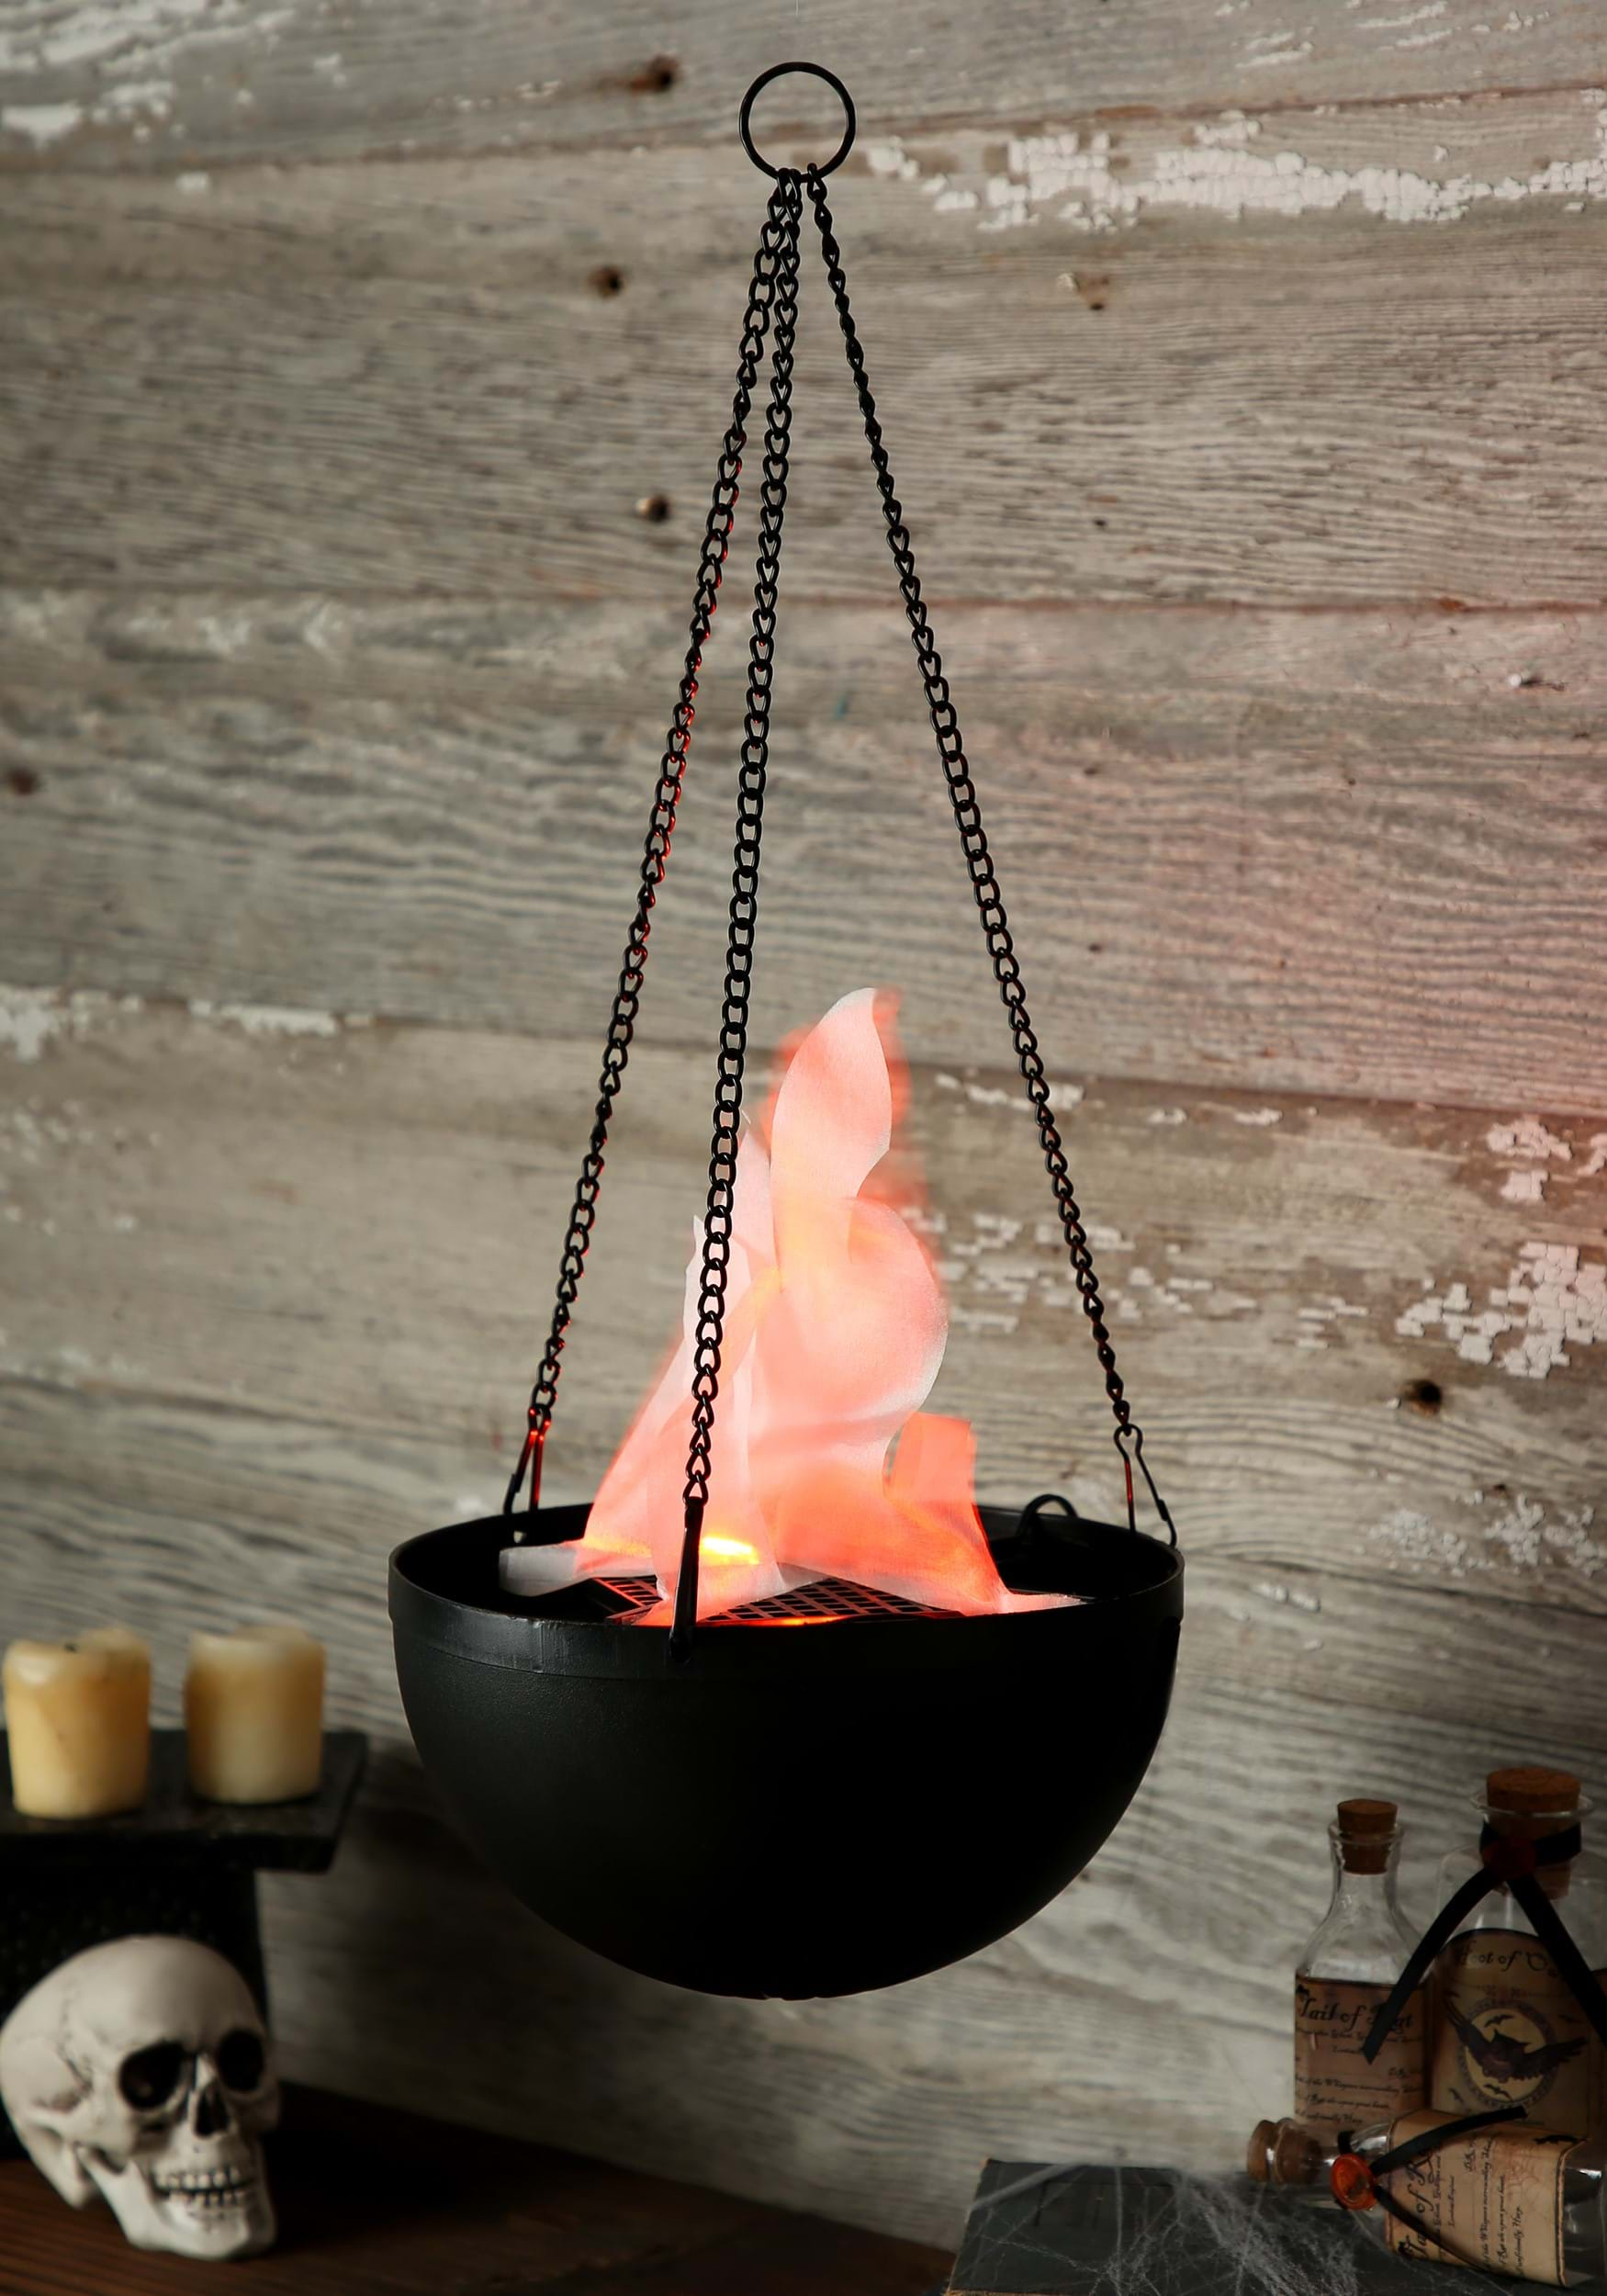 Hanging Flame Light - Witch Cauldron Decoration